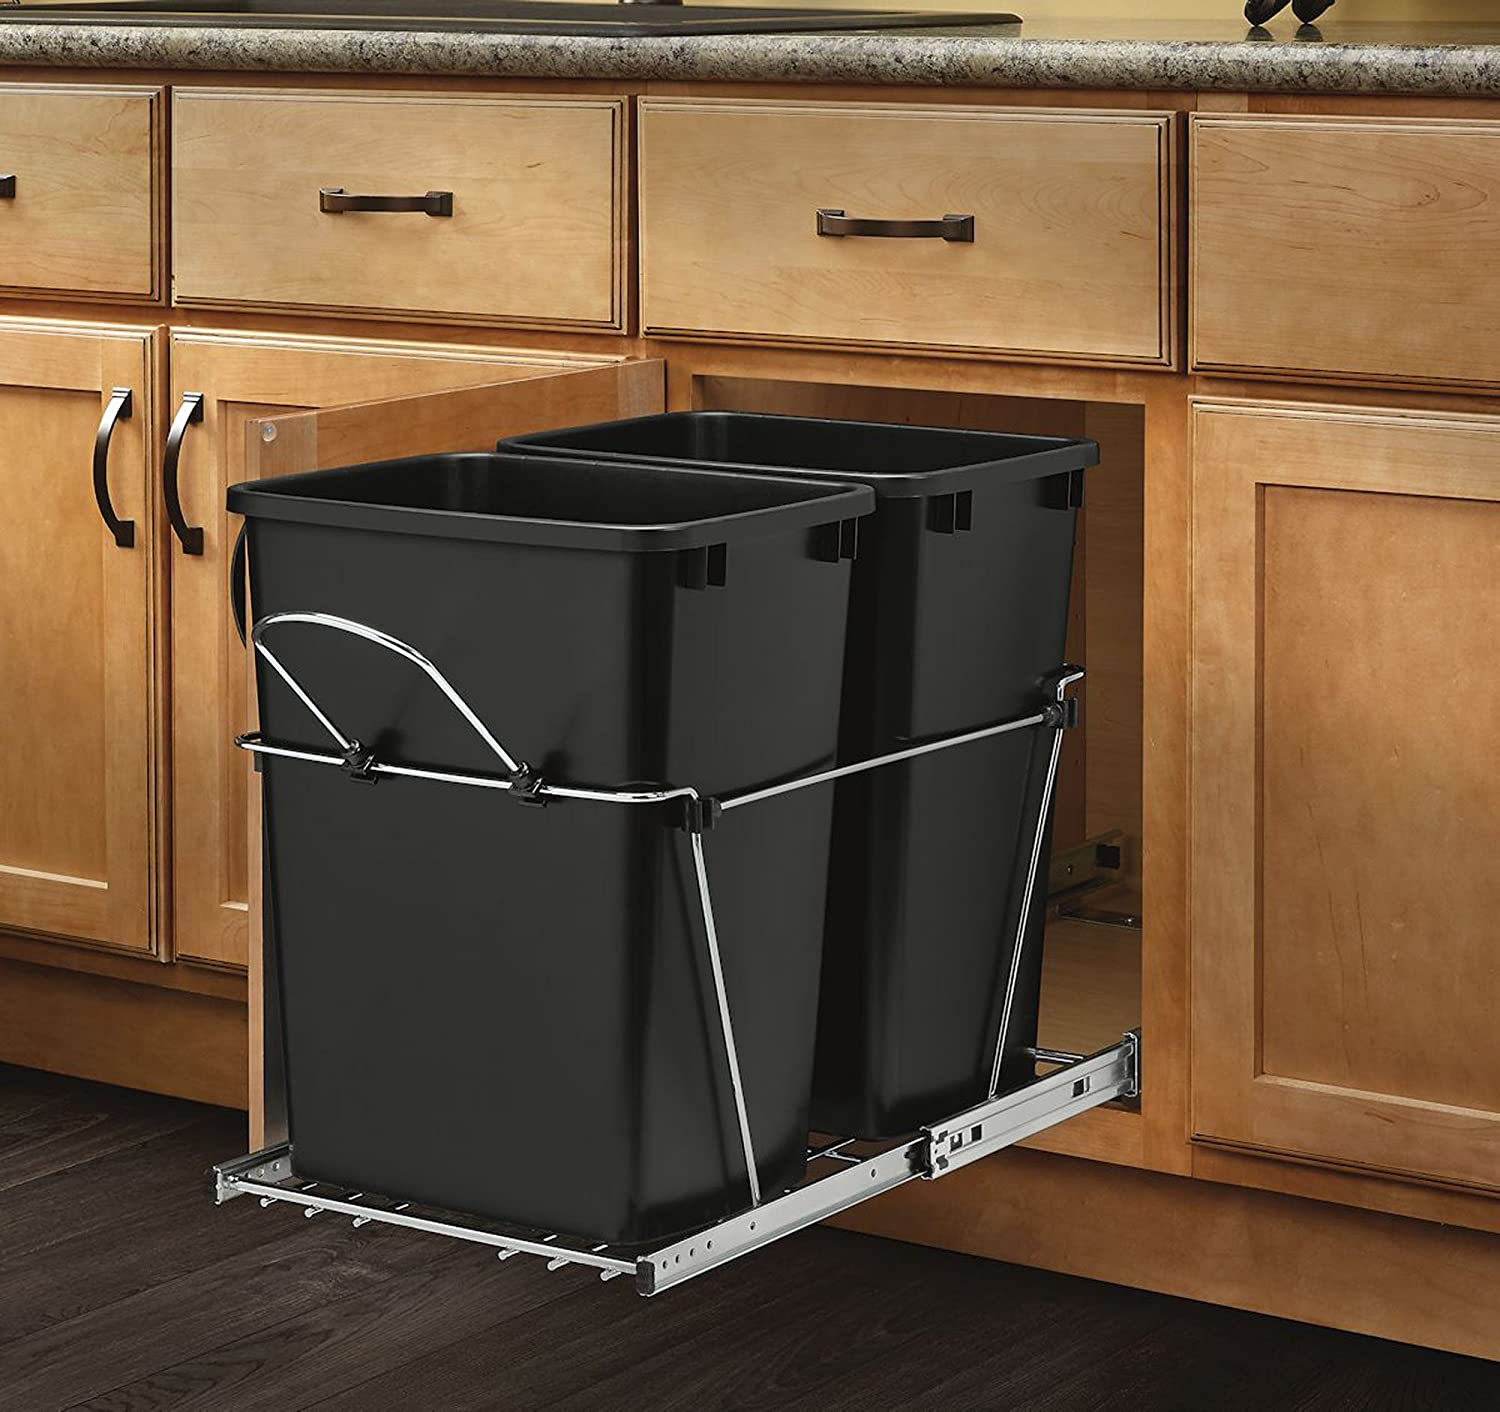 Under Cabinet Drop Down Shelf Hardware: 35QT Under Cabinet Pull Out Trash Can 2 Bin Undersink